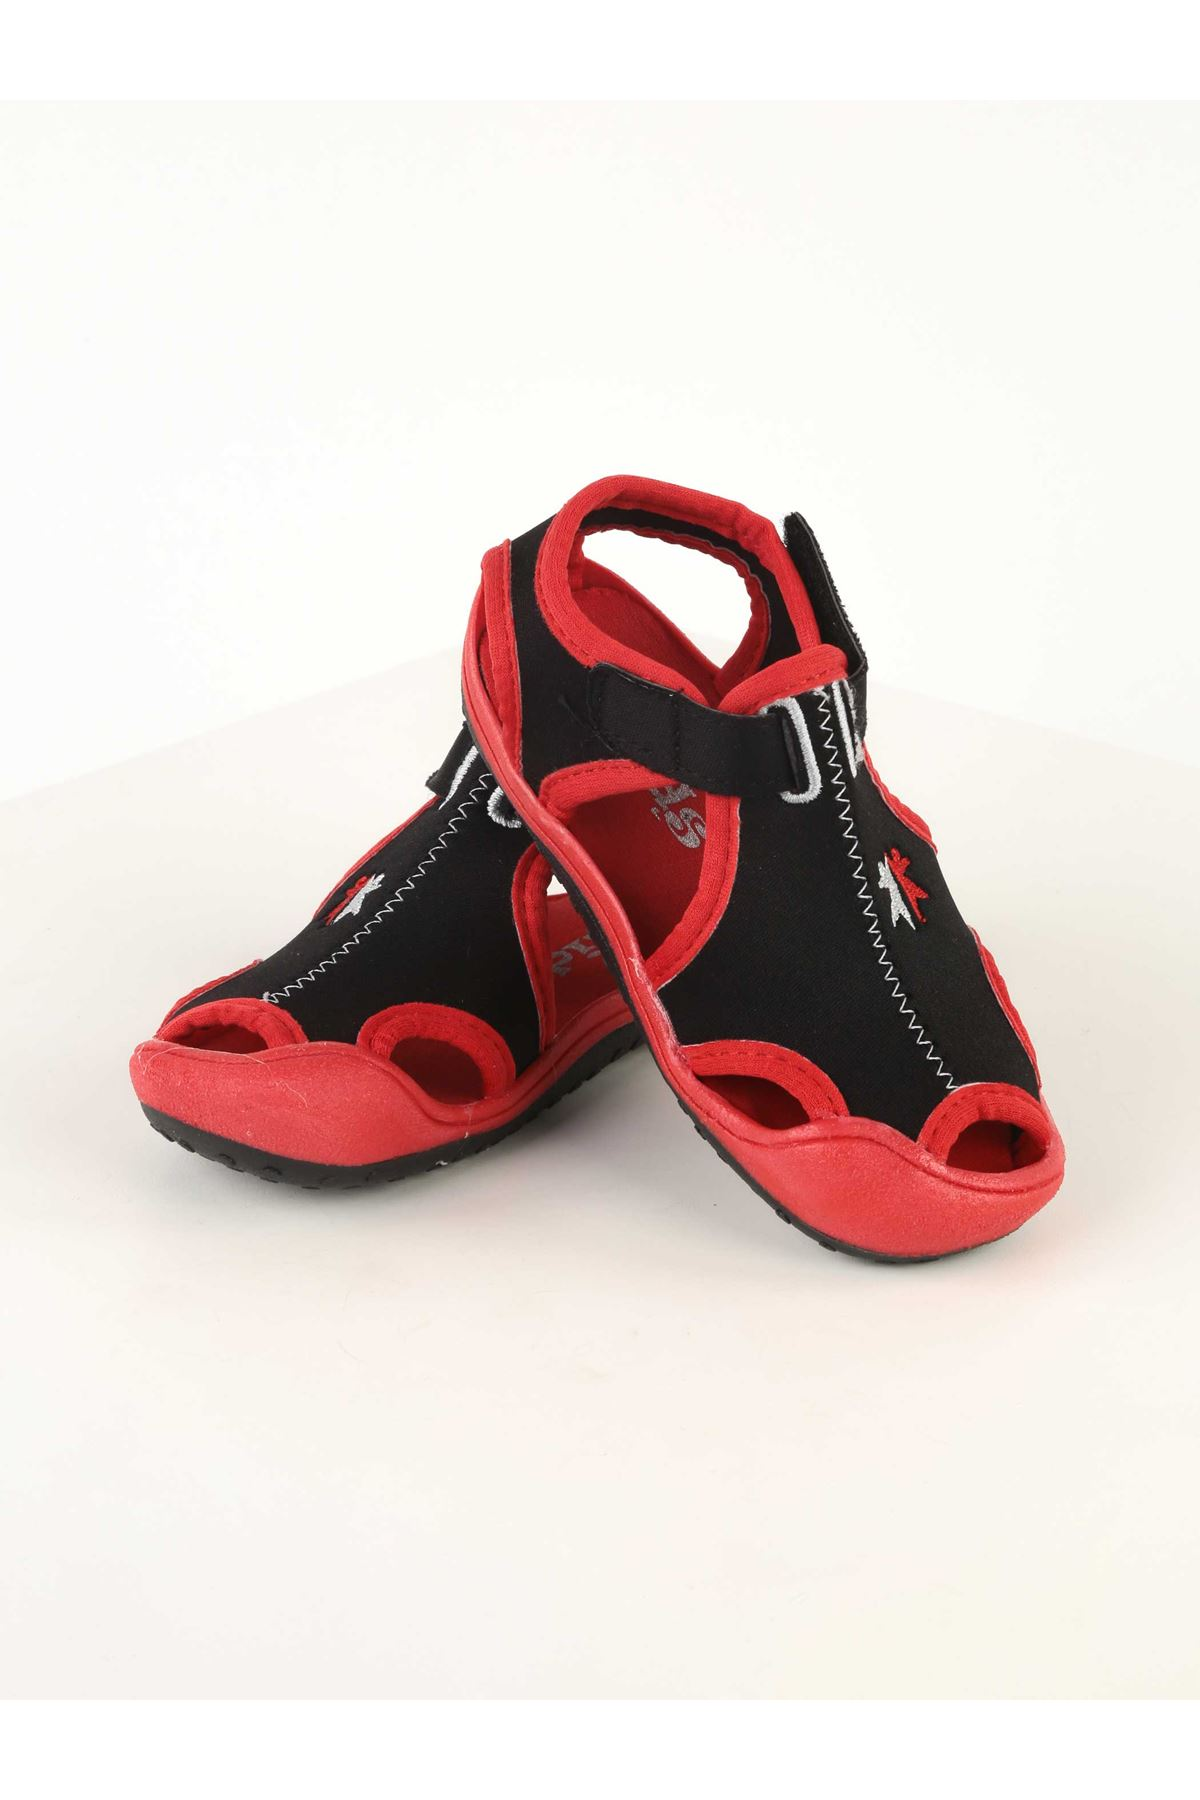 Red boys girls baby kids outdoor sandals beach summer seasonal comfortable babies shoes sandals models